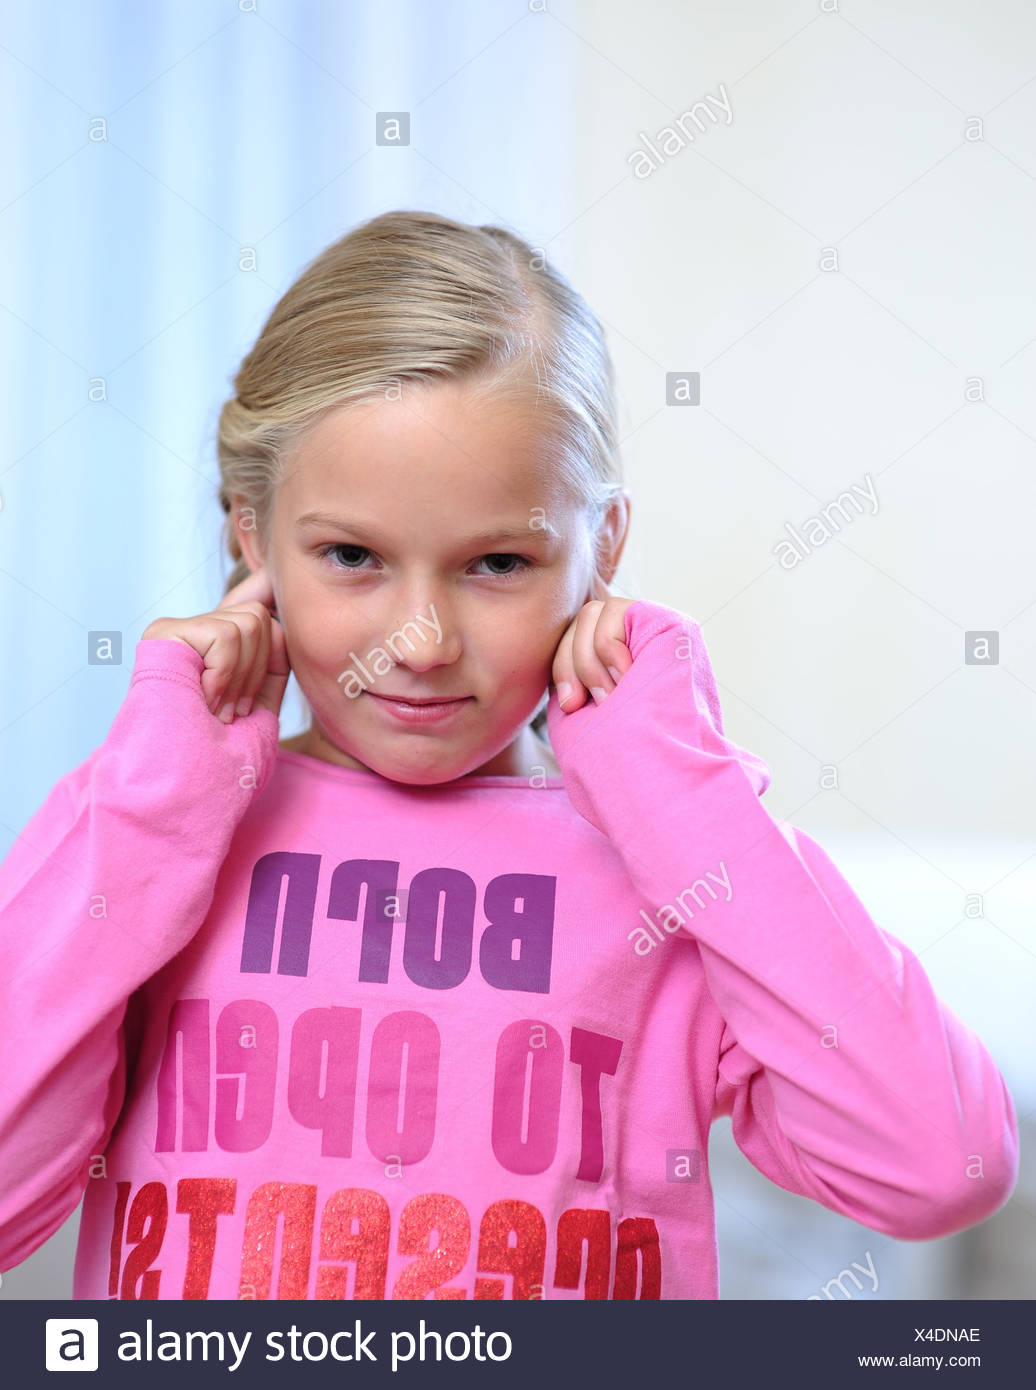 Young Girl Stops One's Ears - Stock Image